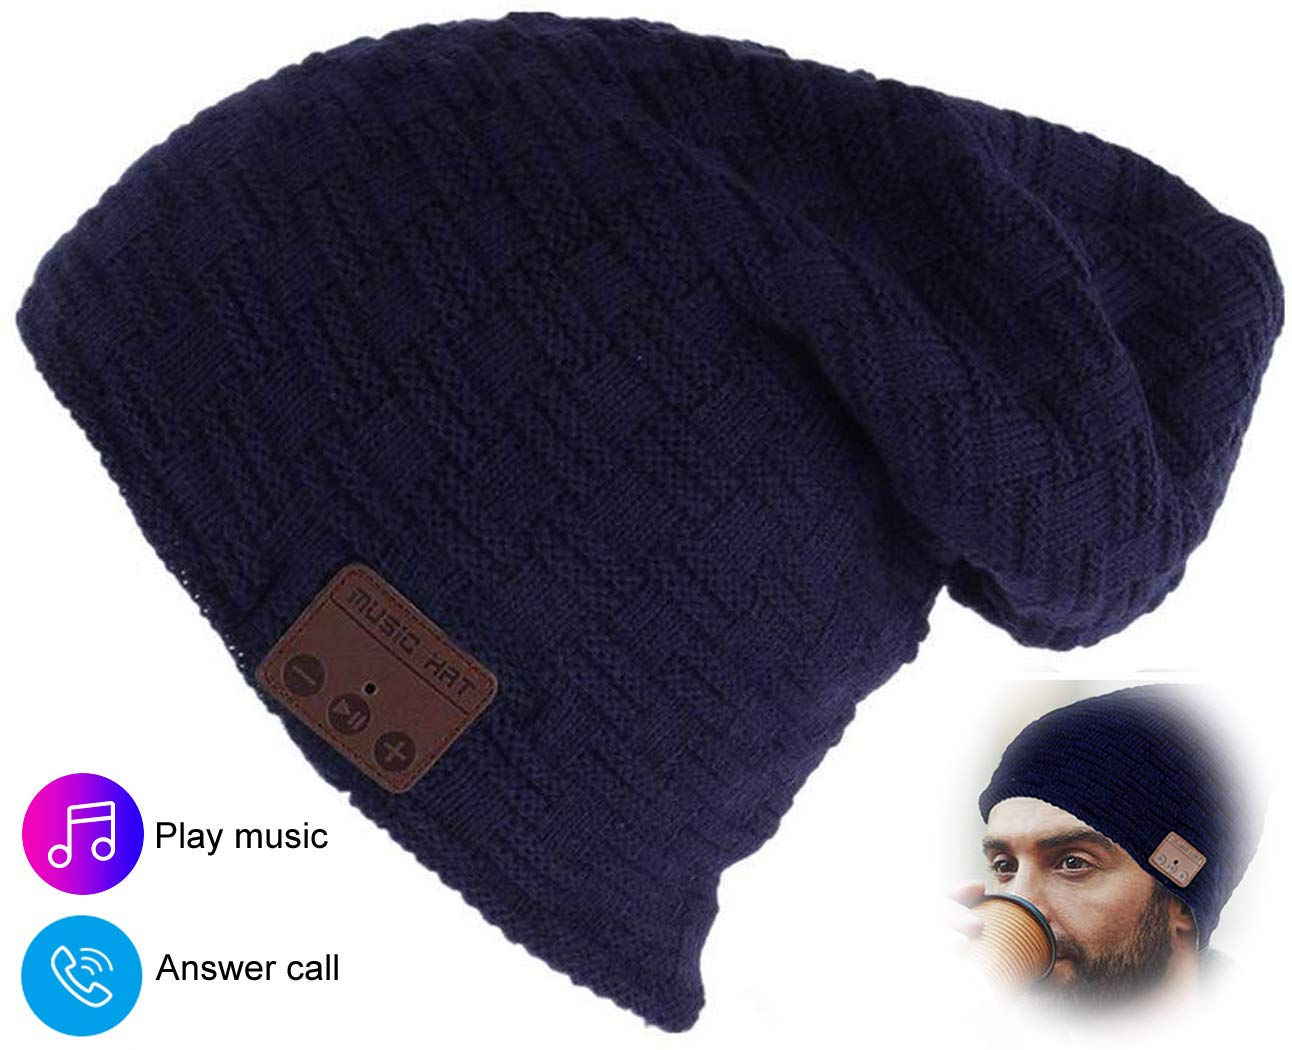 Bluetooth Beanie Bluetooth Hat Women Men Boys Winter Warm Beanie Hats with 5.0 Wireless Headphones Musical Knit Cap for Hands Free Call Music Running Skiing Christmas Birthday Thanksgiving Day Gifts